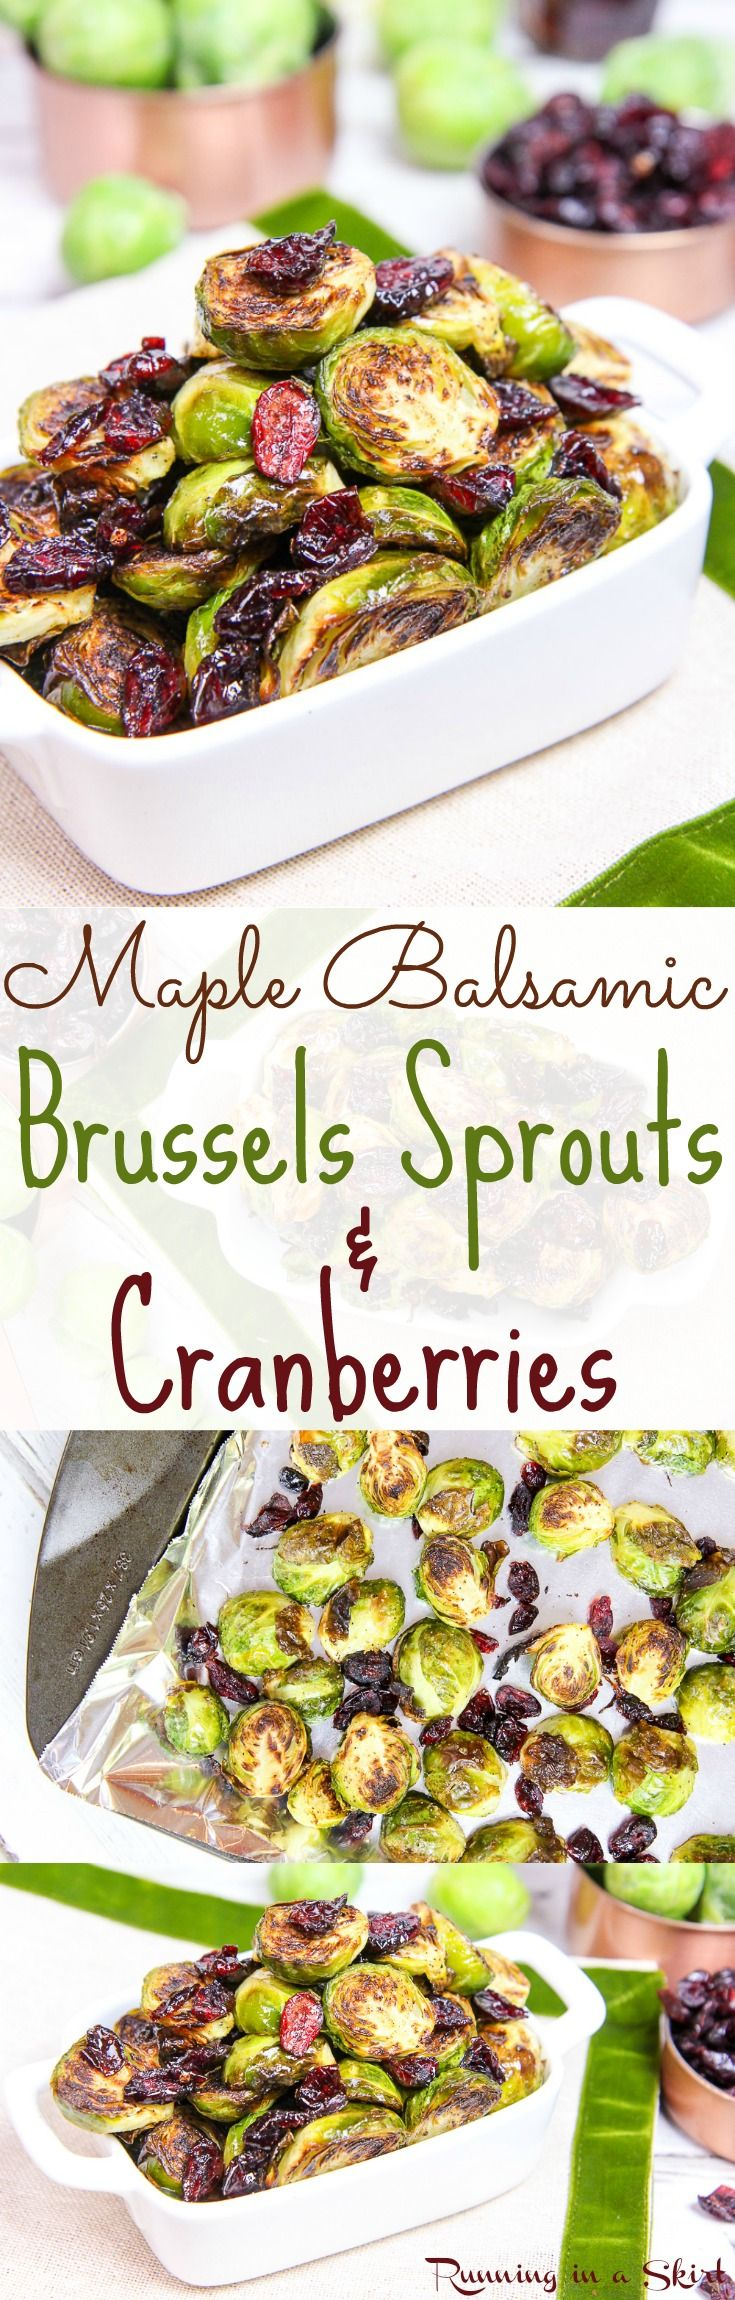 Maple Balsamic Brussels Sprouts and Cranberries recipe.  Great for a healthy Thanksgiving side dish or Christmas dinner but easy enough for a weekday dinner.  The best crispy, oven roasted sprouts recipe with maple syrup! Vegan, vegetarian, gluten free. / Running in a Skirt